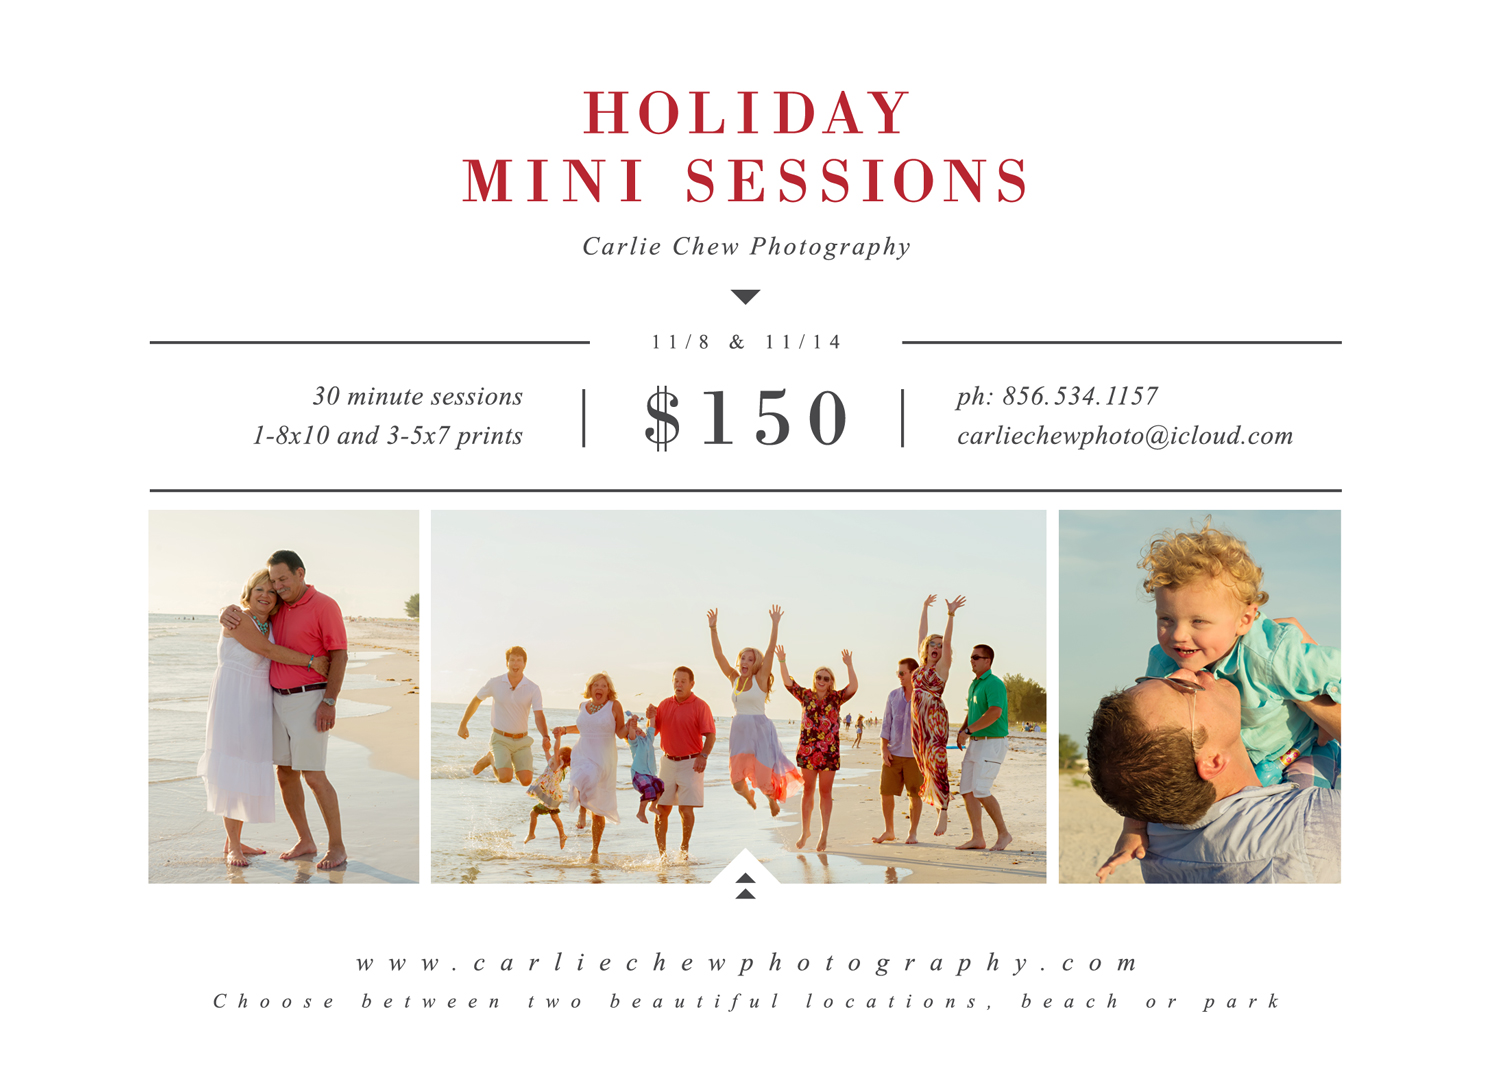 Holiday Mini Sessions with Carlie Chew Photography family photographer in Tampa or at the beach